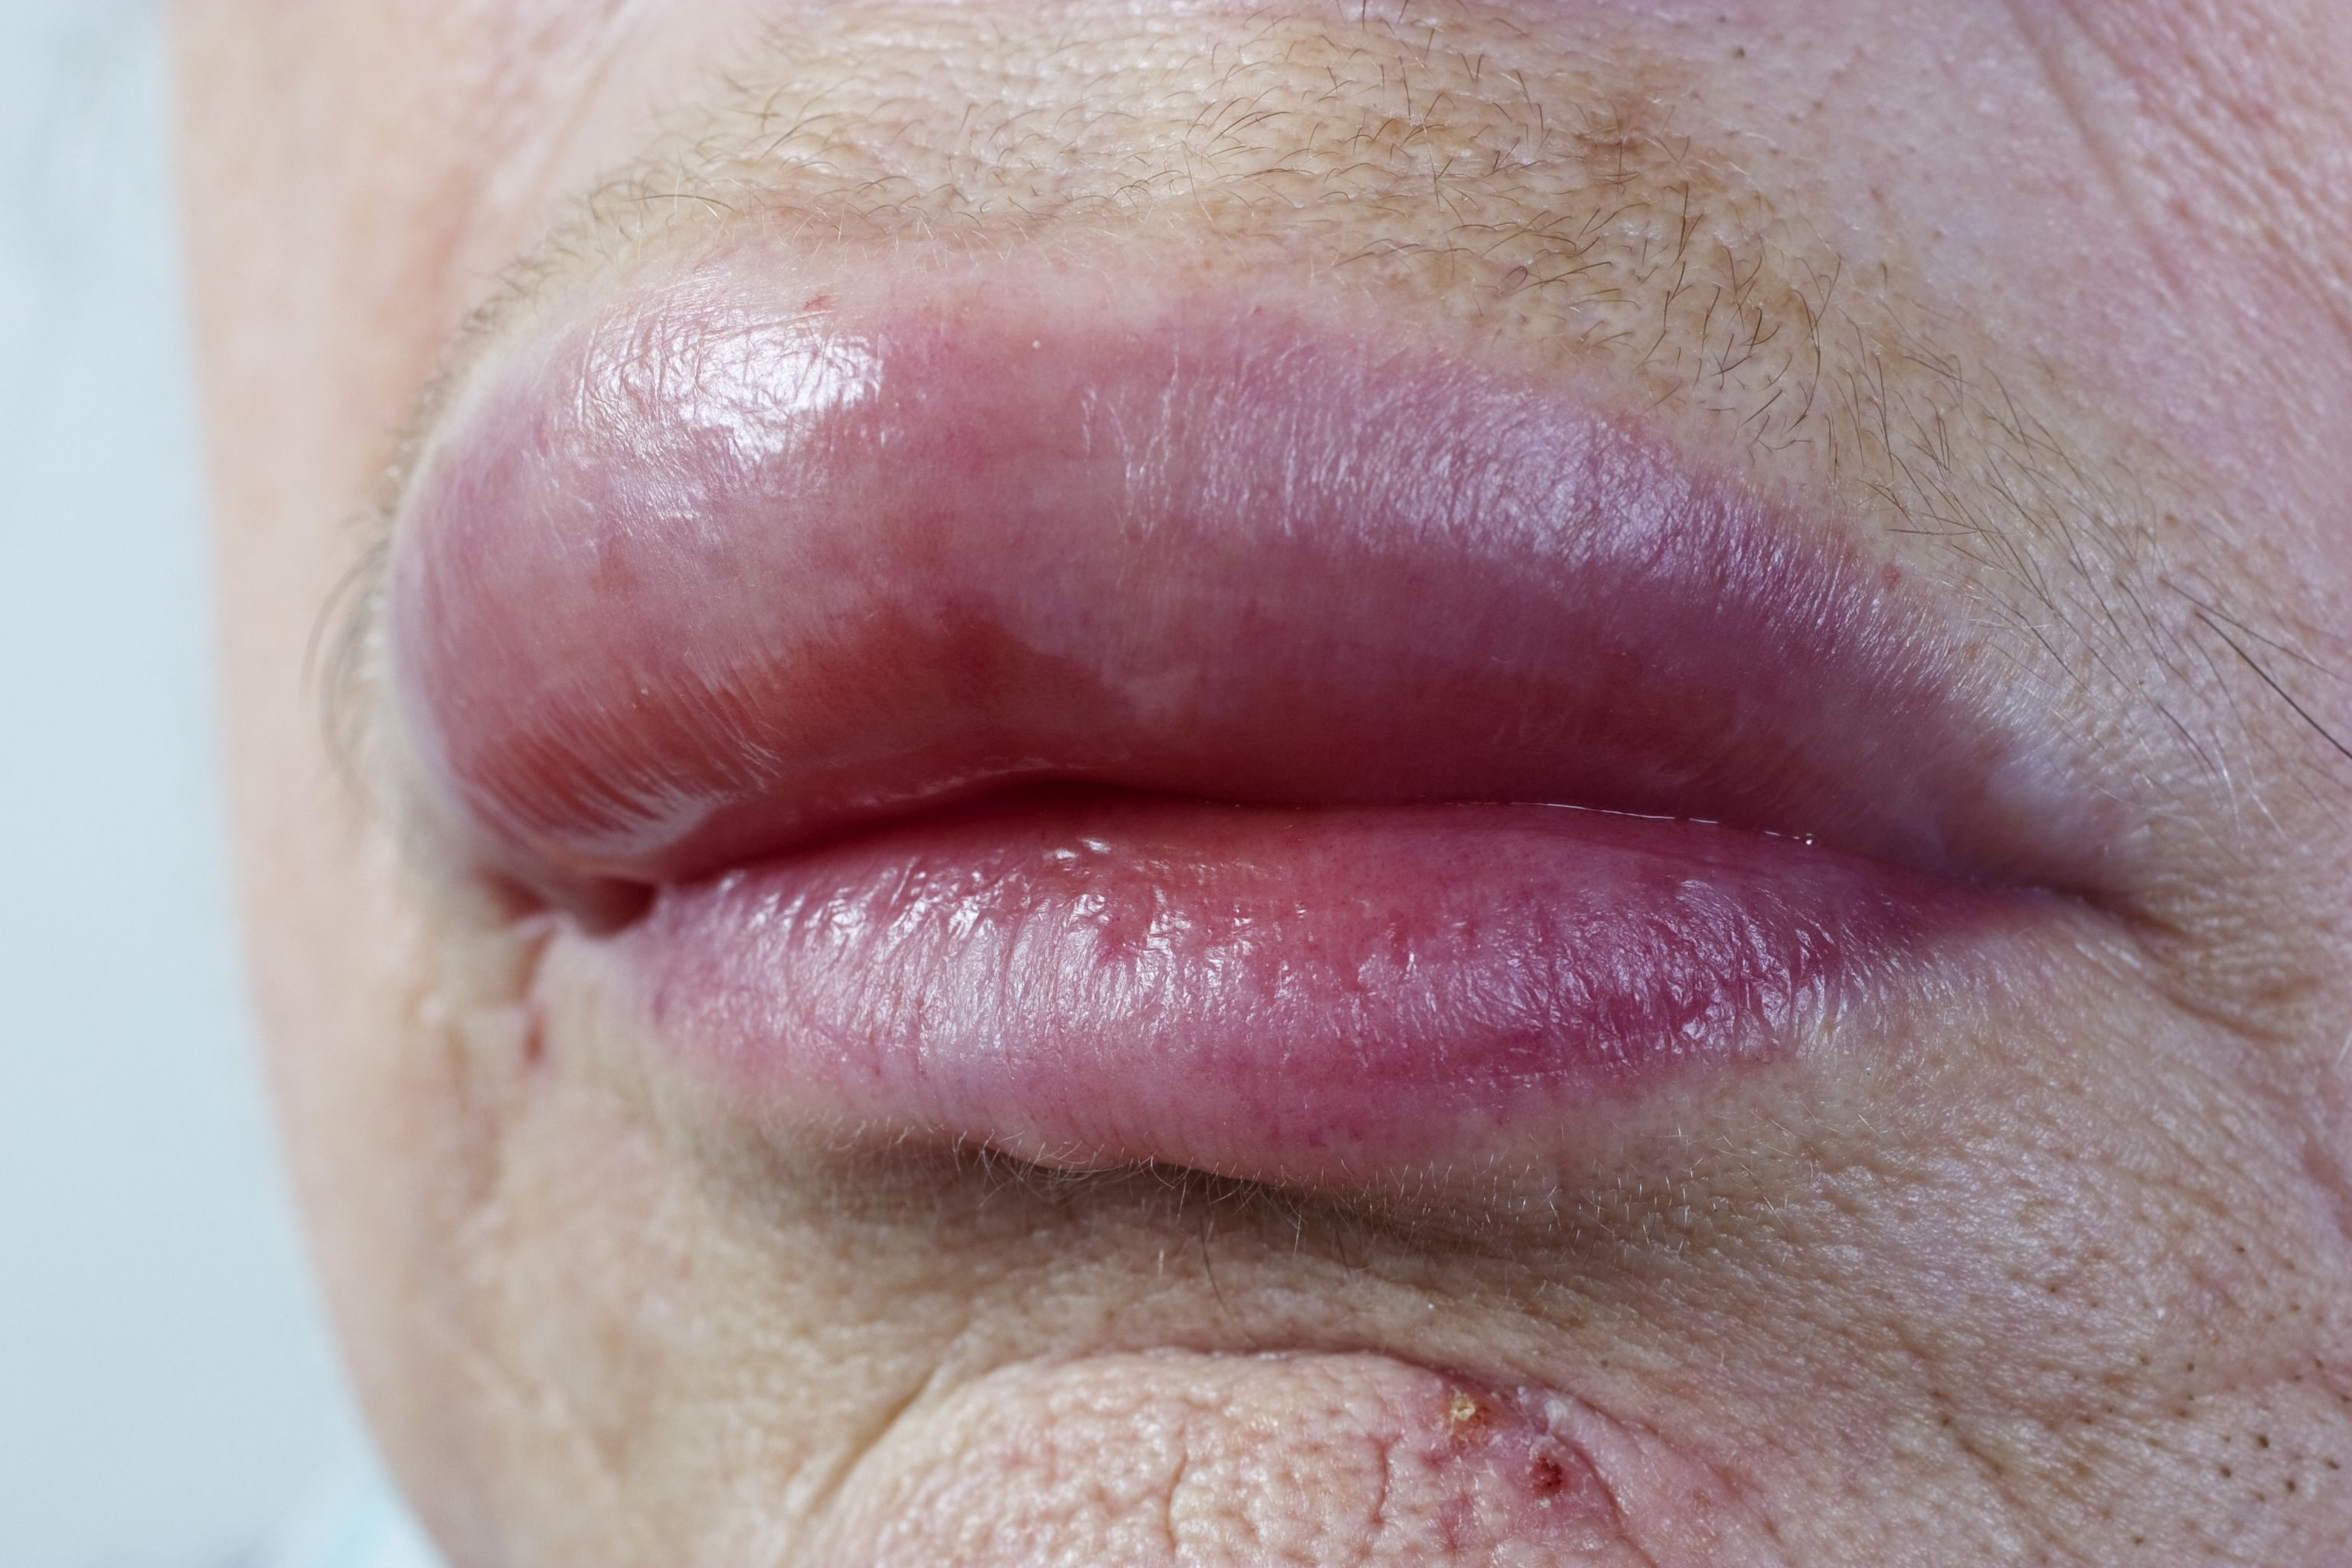 Oral Allergy Syndrome Symptoms And Treatment